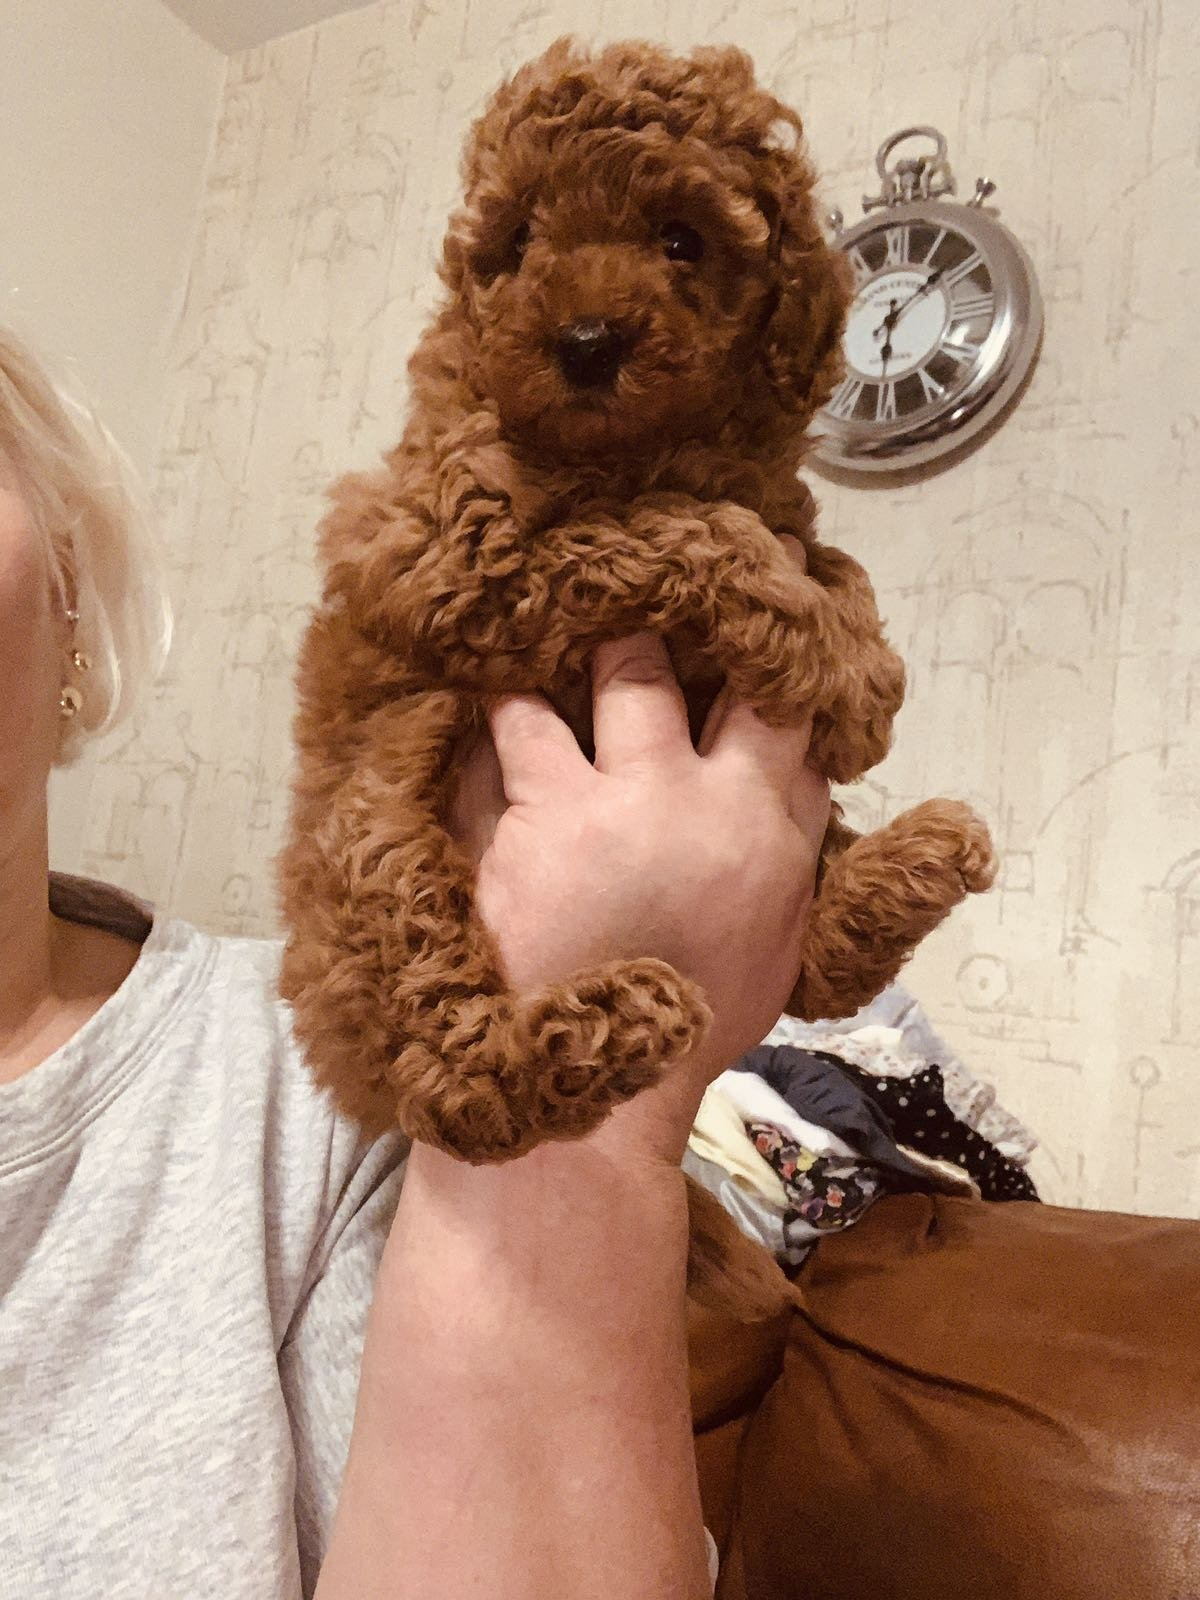 TOY POODLE RED VE DARK RED YAVRULAR 2